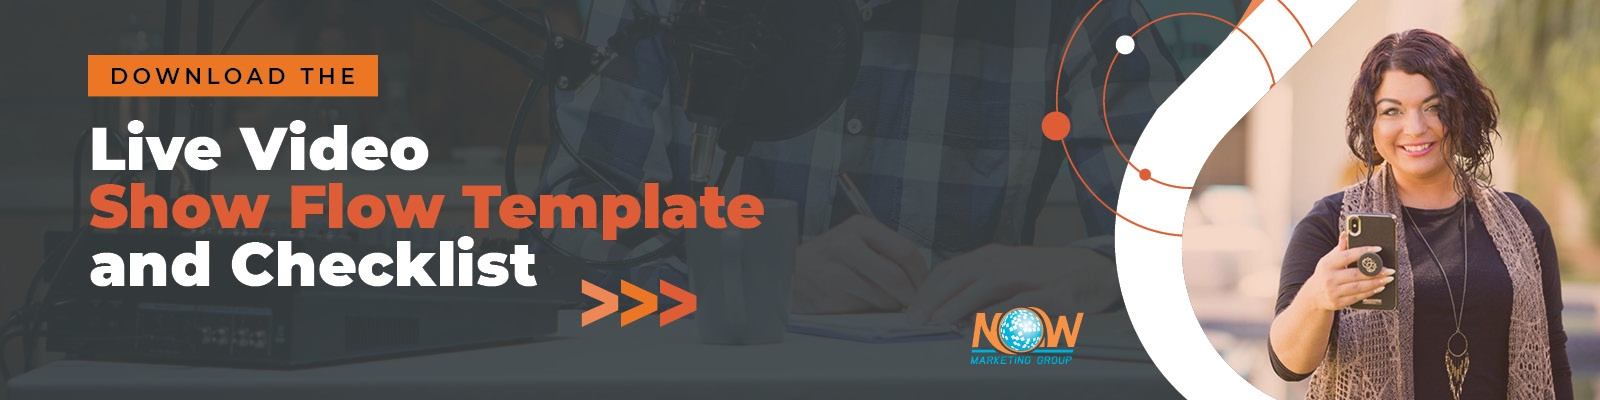 NOW Marketing Group Live Video Show Flow Template and Checklist